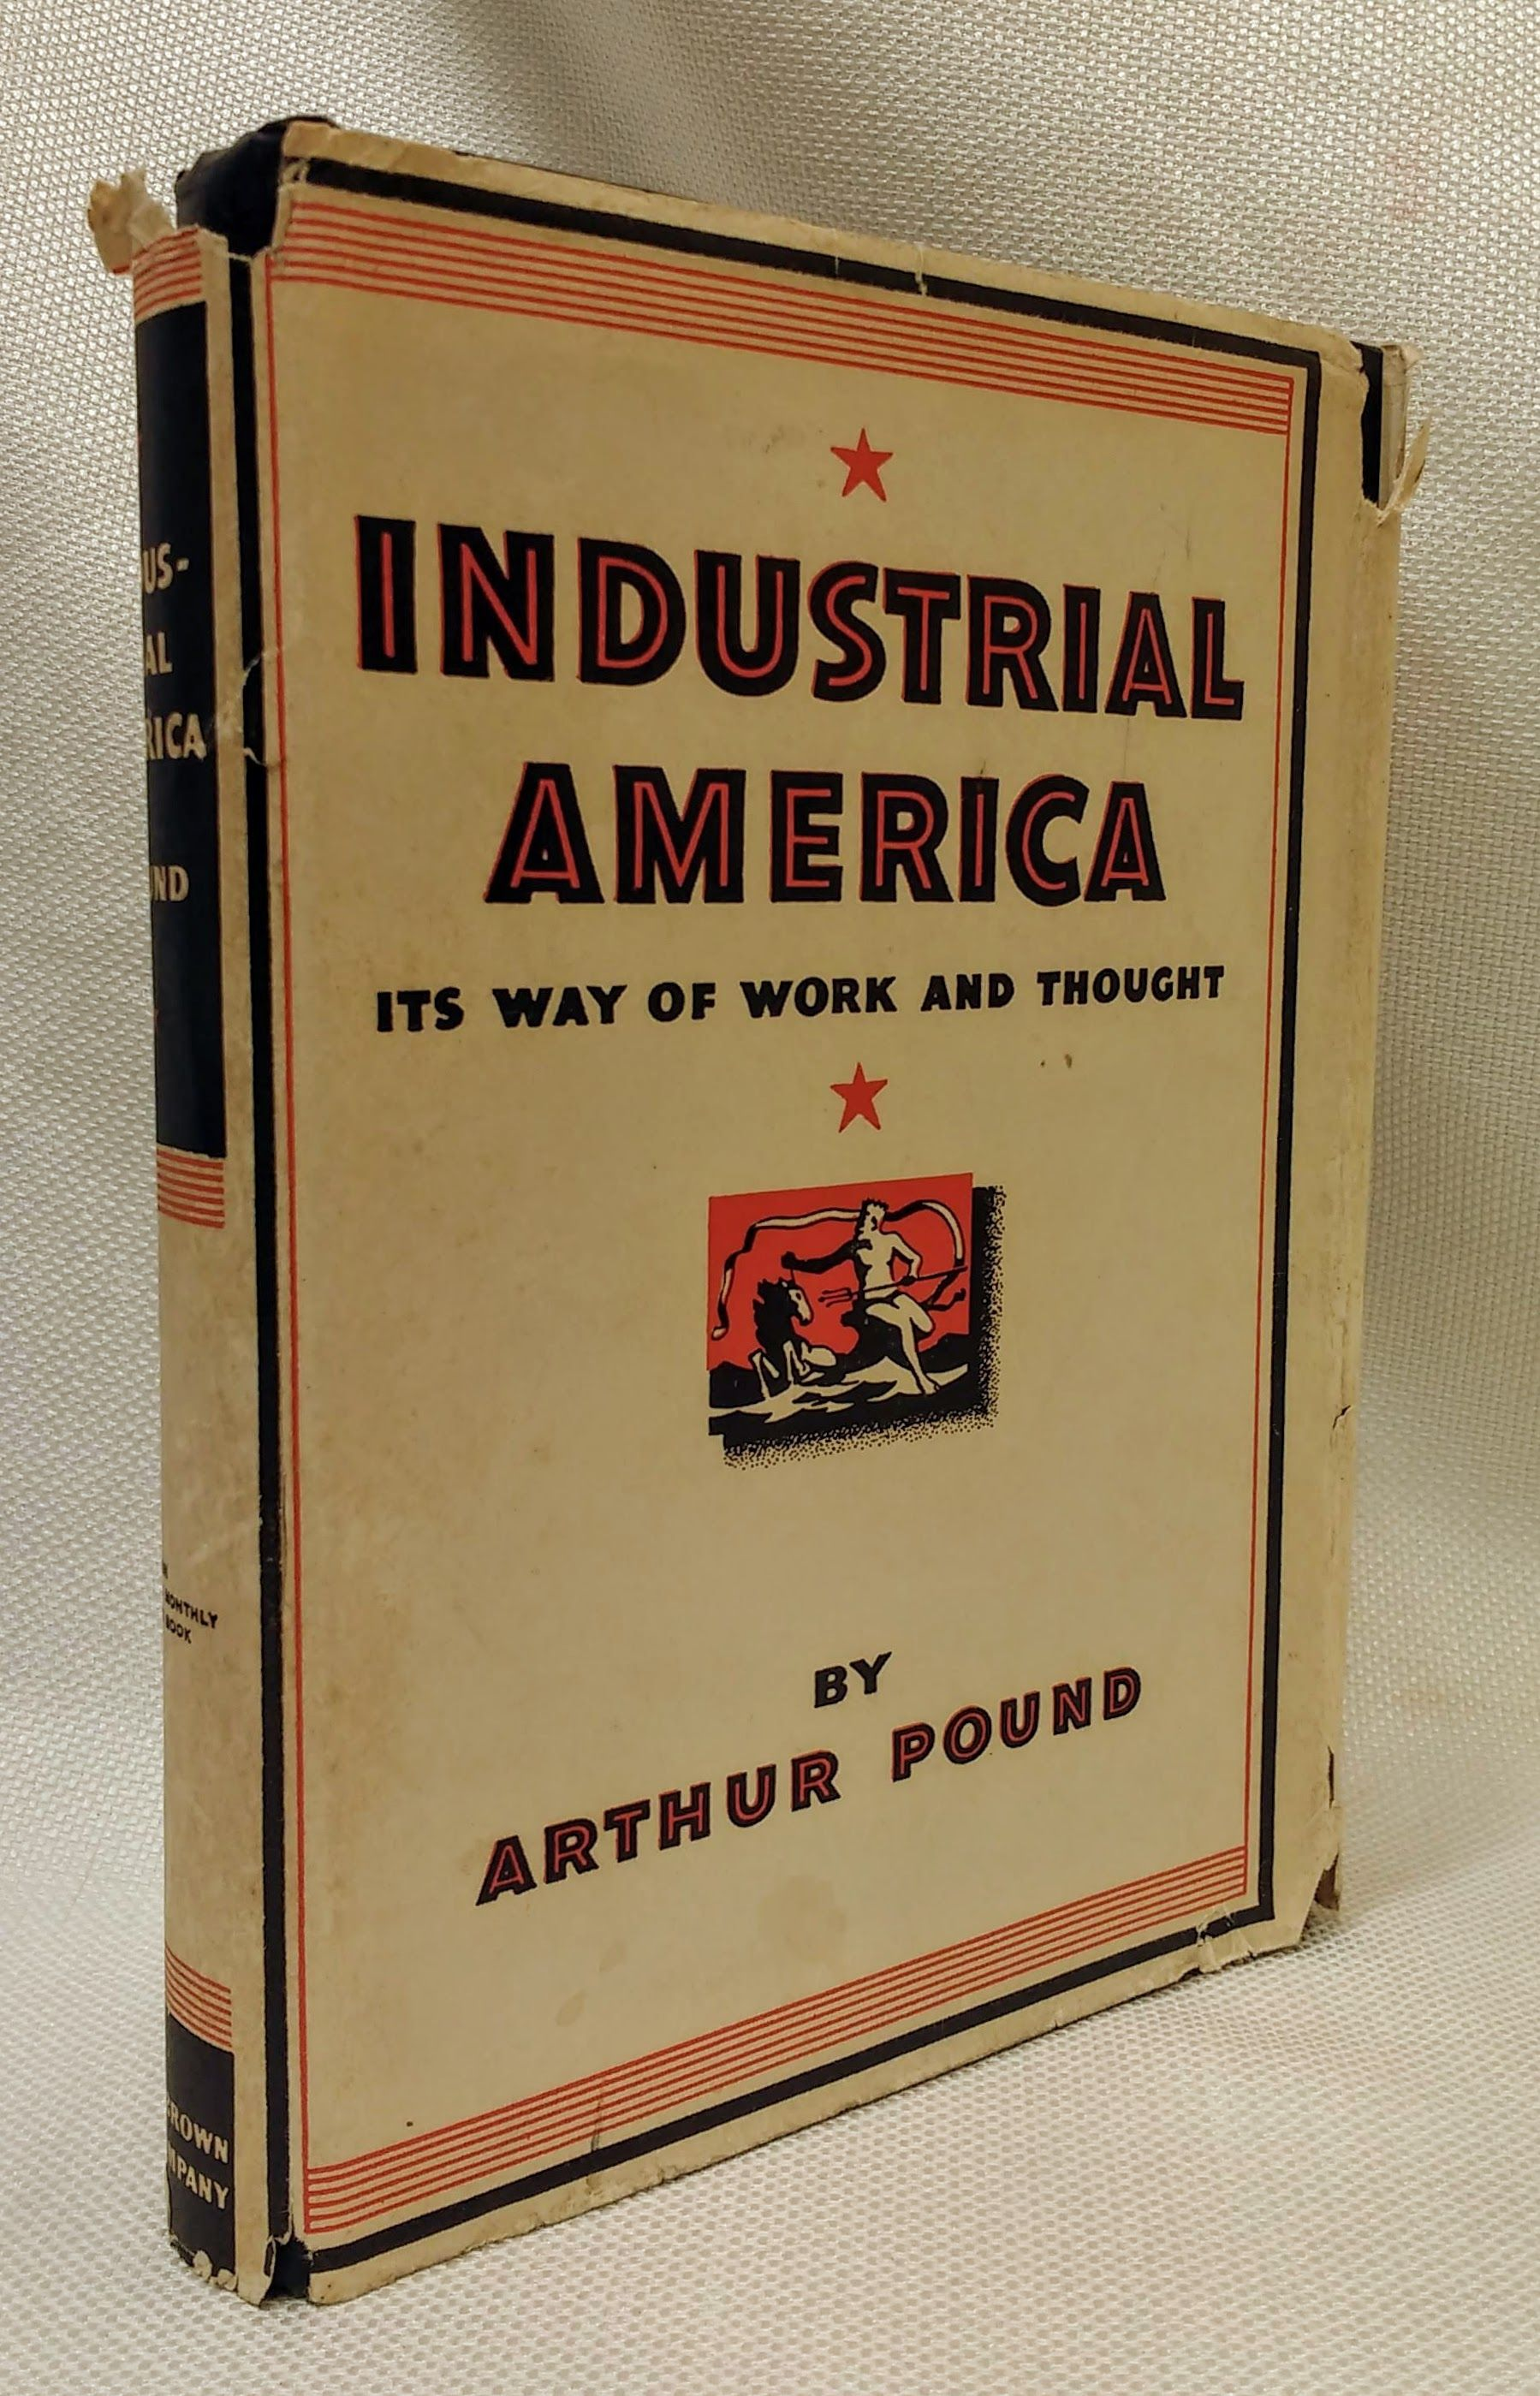 Industrial America, its way of work and thought, Pound, Arthur